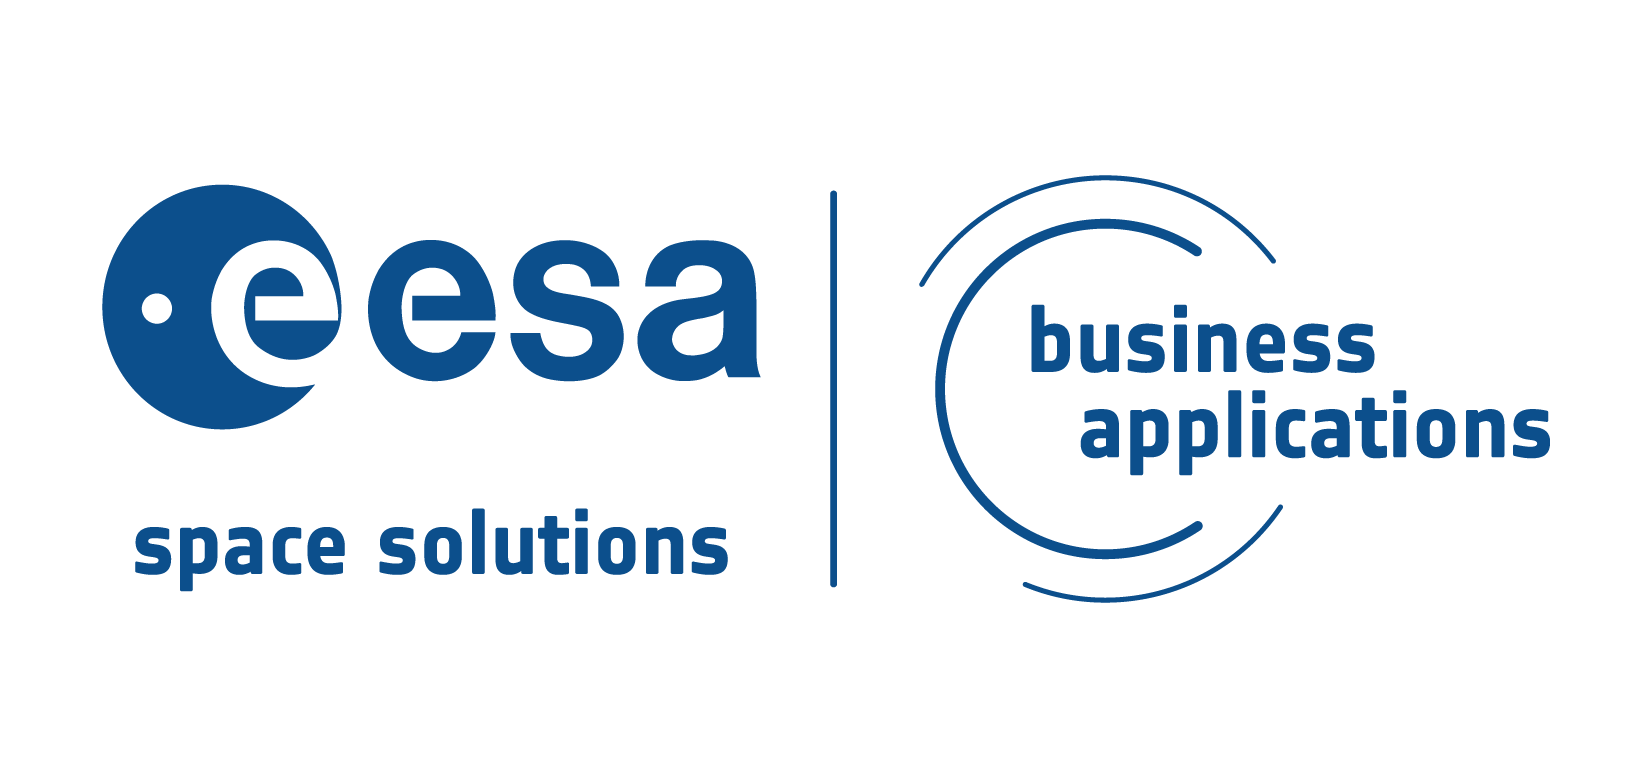 ESA Space Solutions